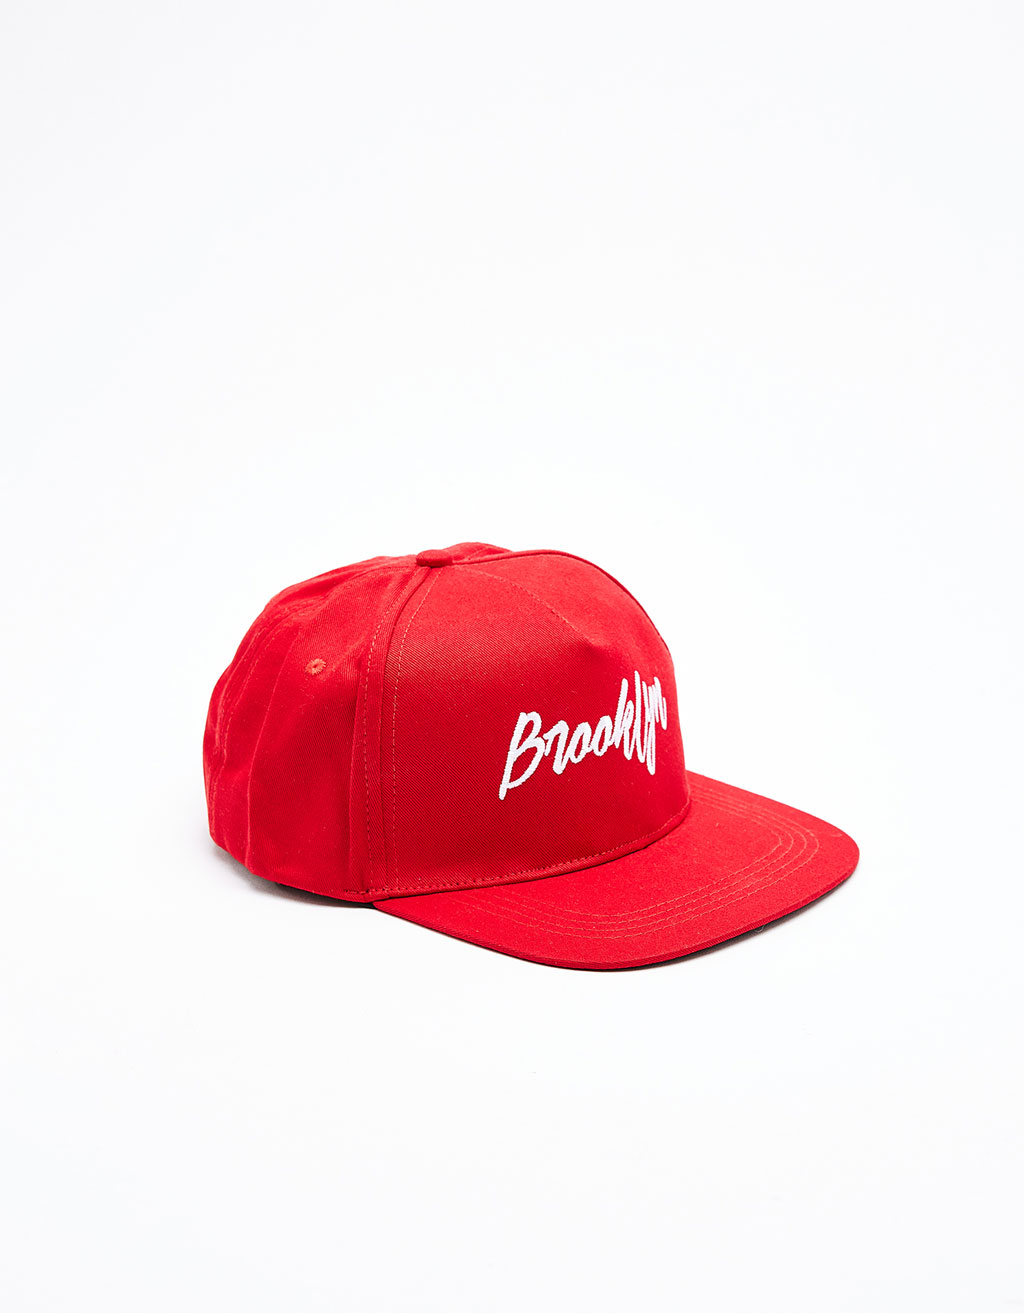 'Brooklyn' embroidered cap